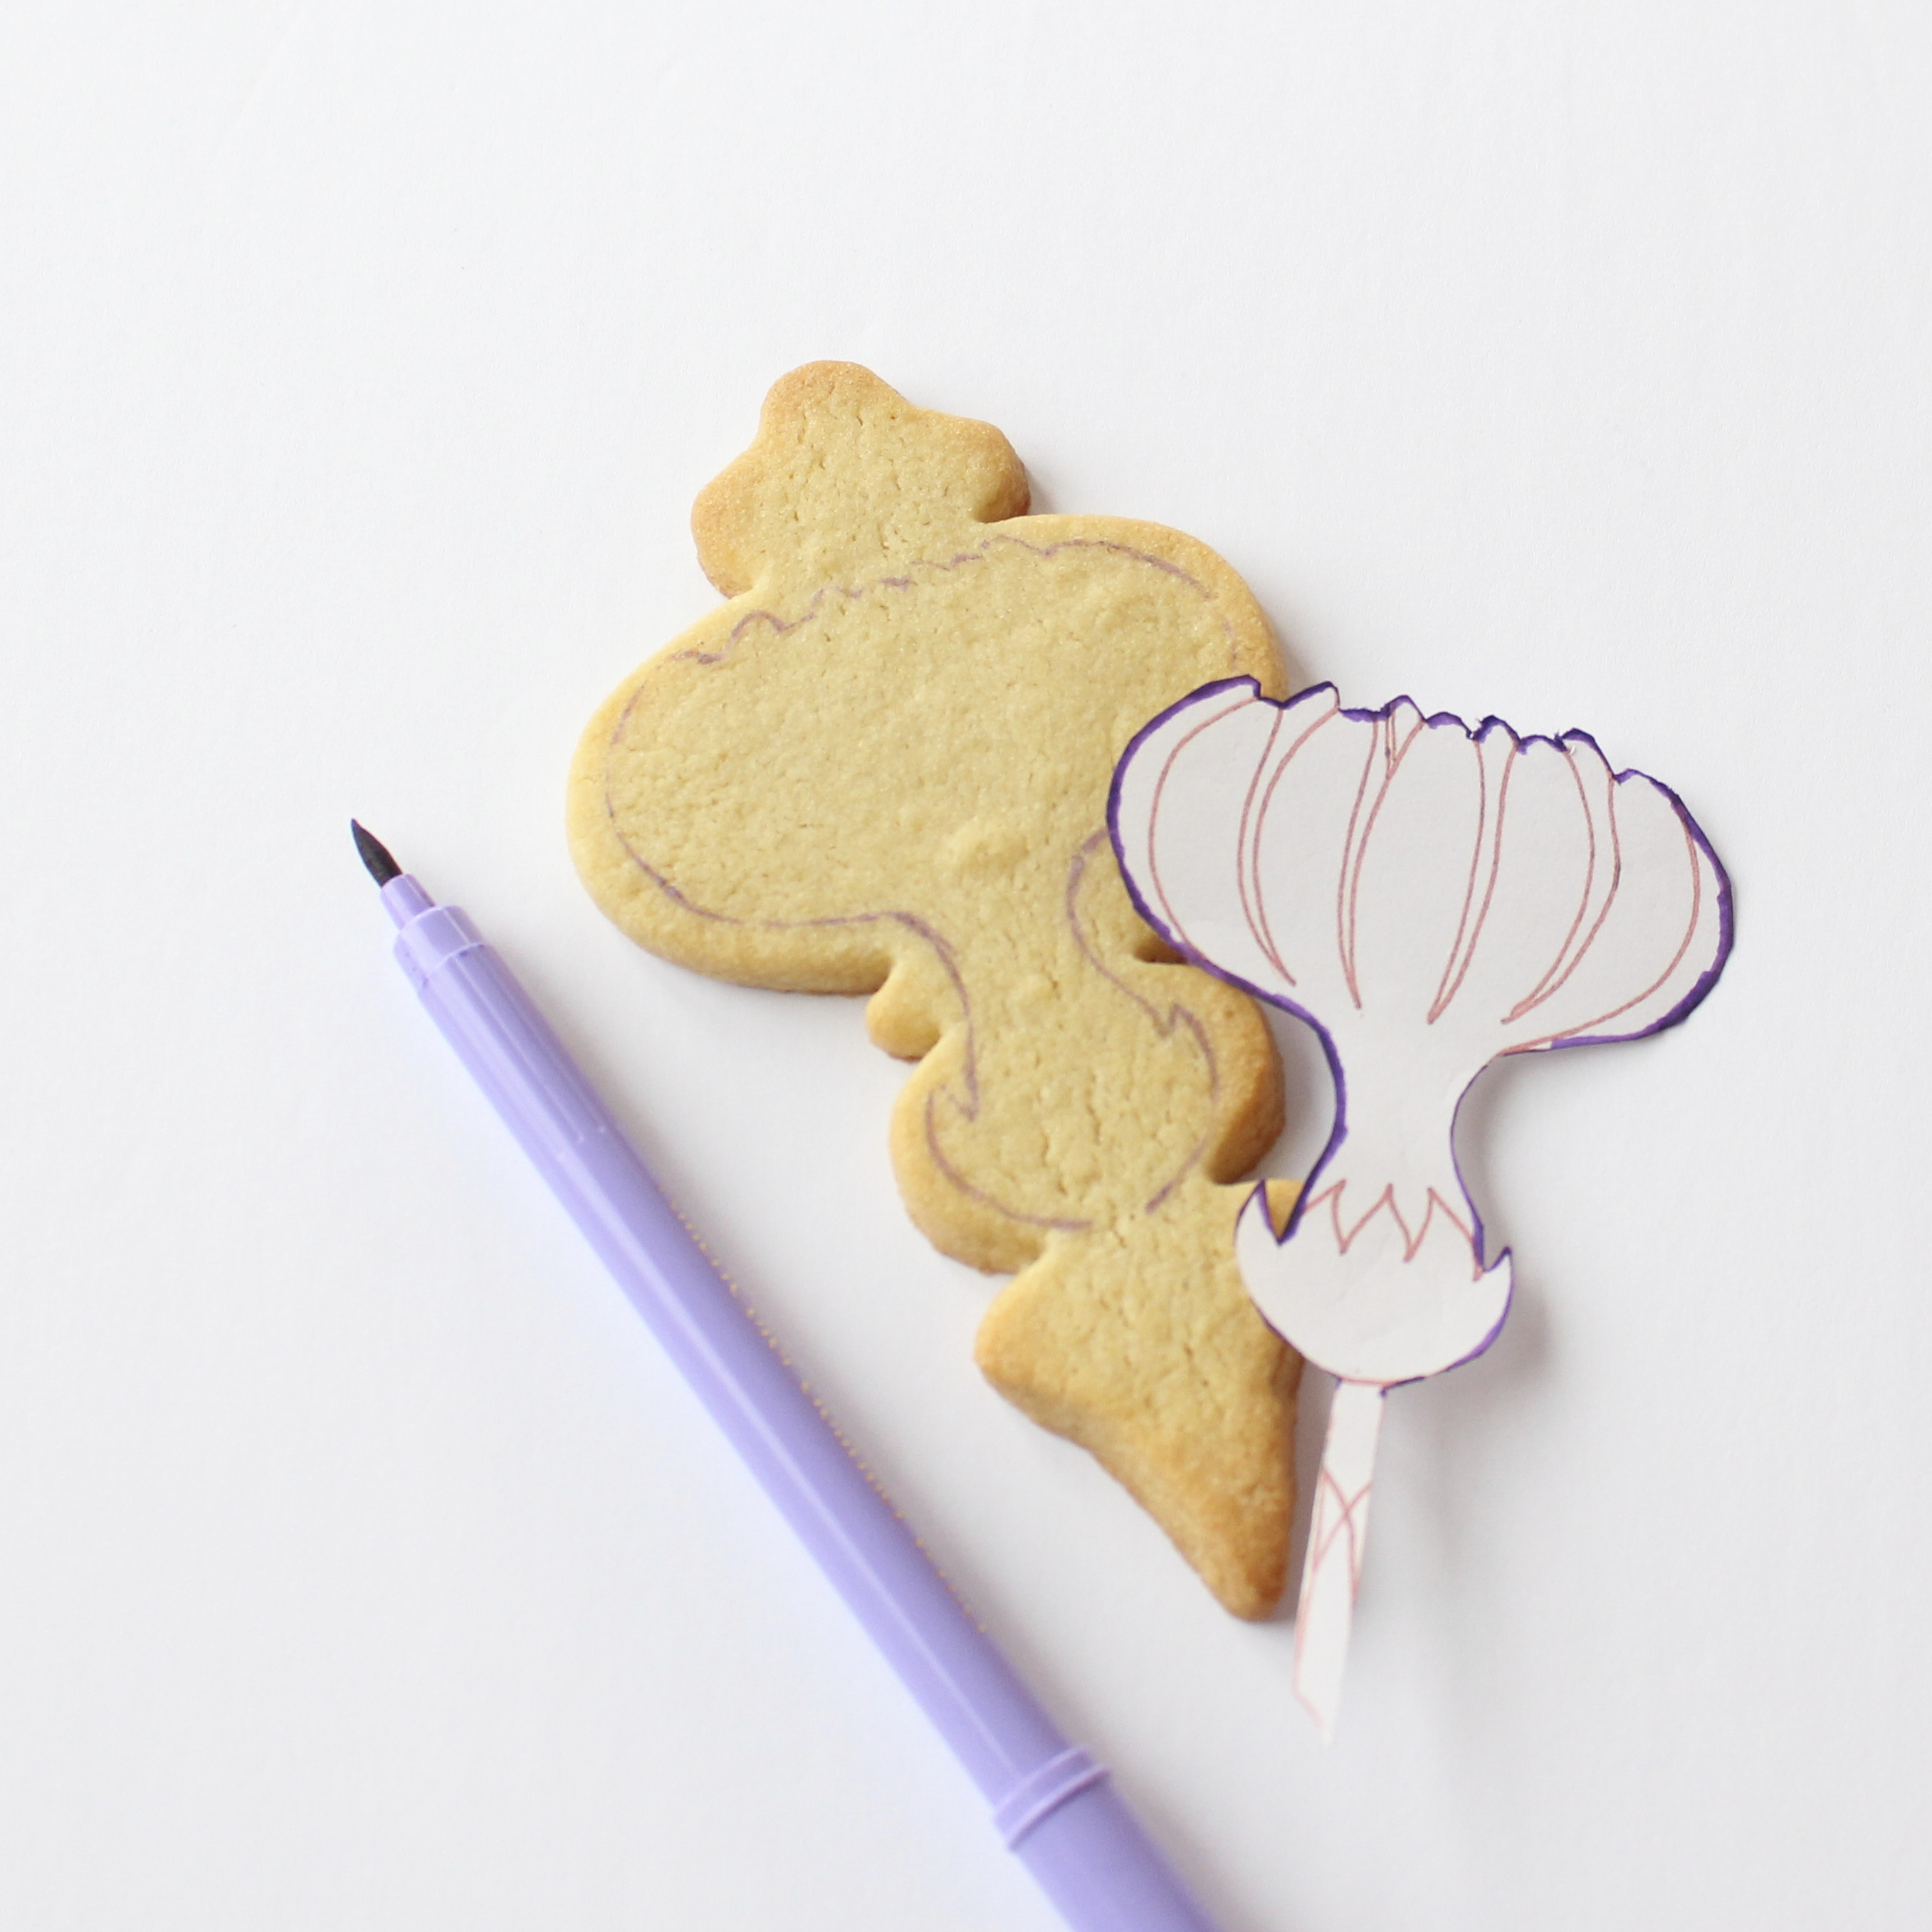 traced cookie